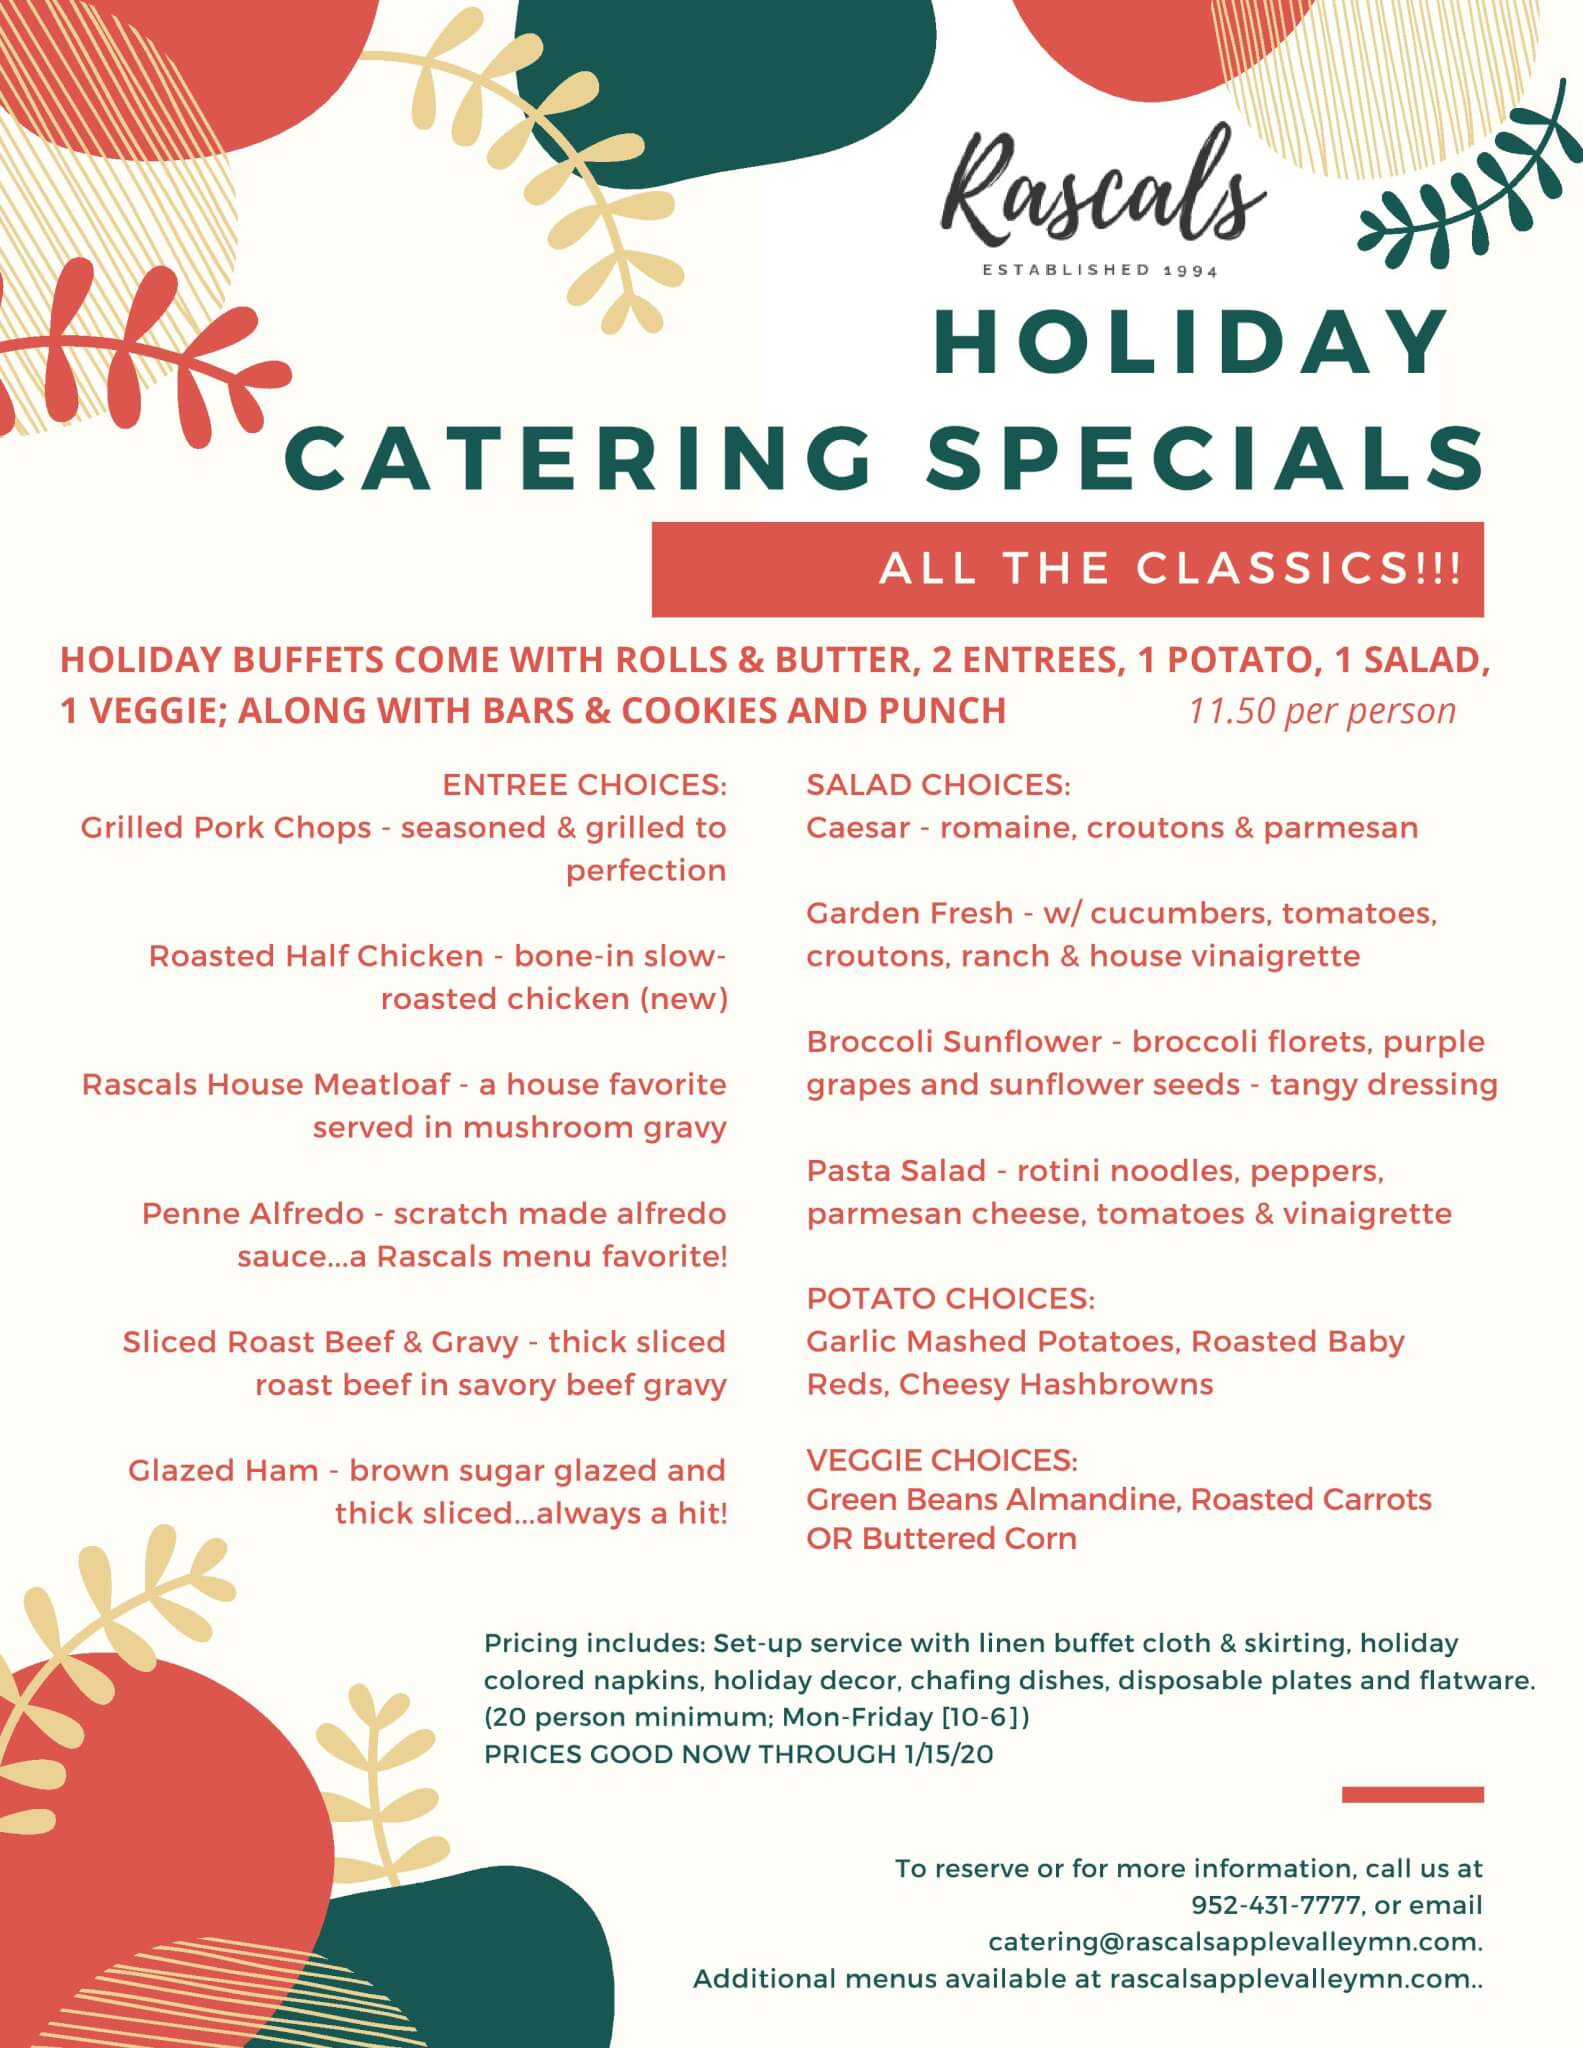 Holiday Catering Specials